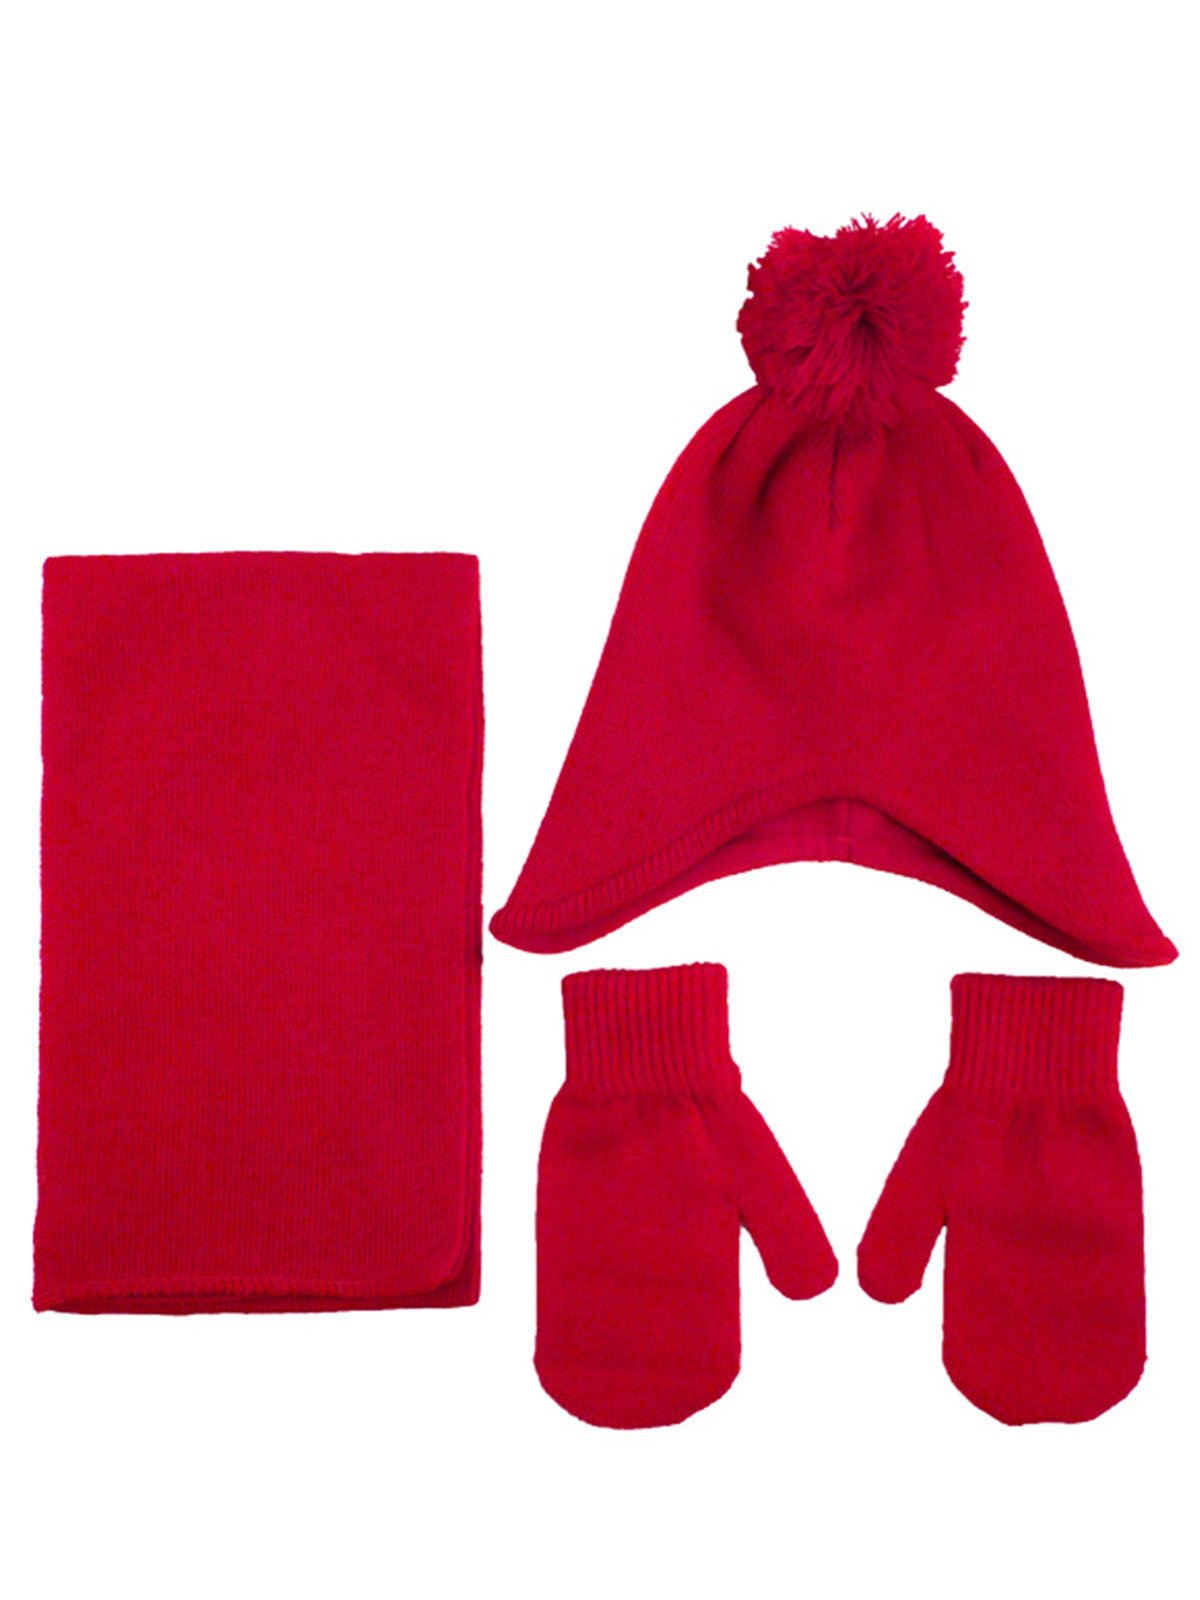 3 Pieces Winter Knit Fleece Pompom Beanie Hat, Scarf, & Glove Set, Red by YoungLove (Image #2)